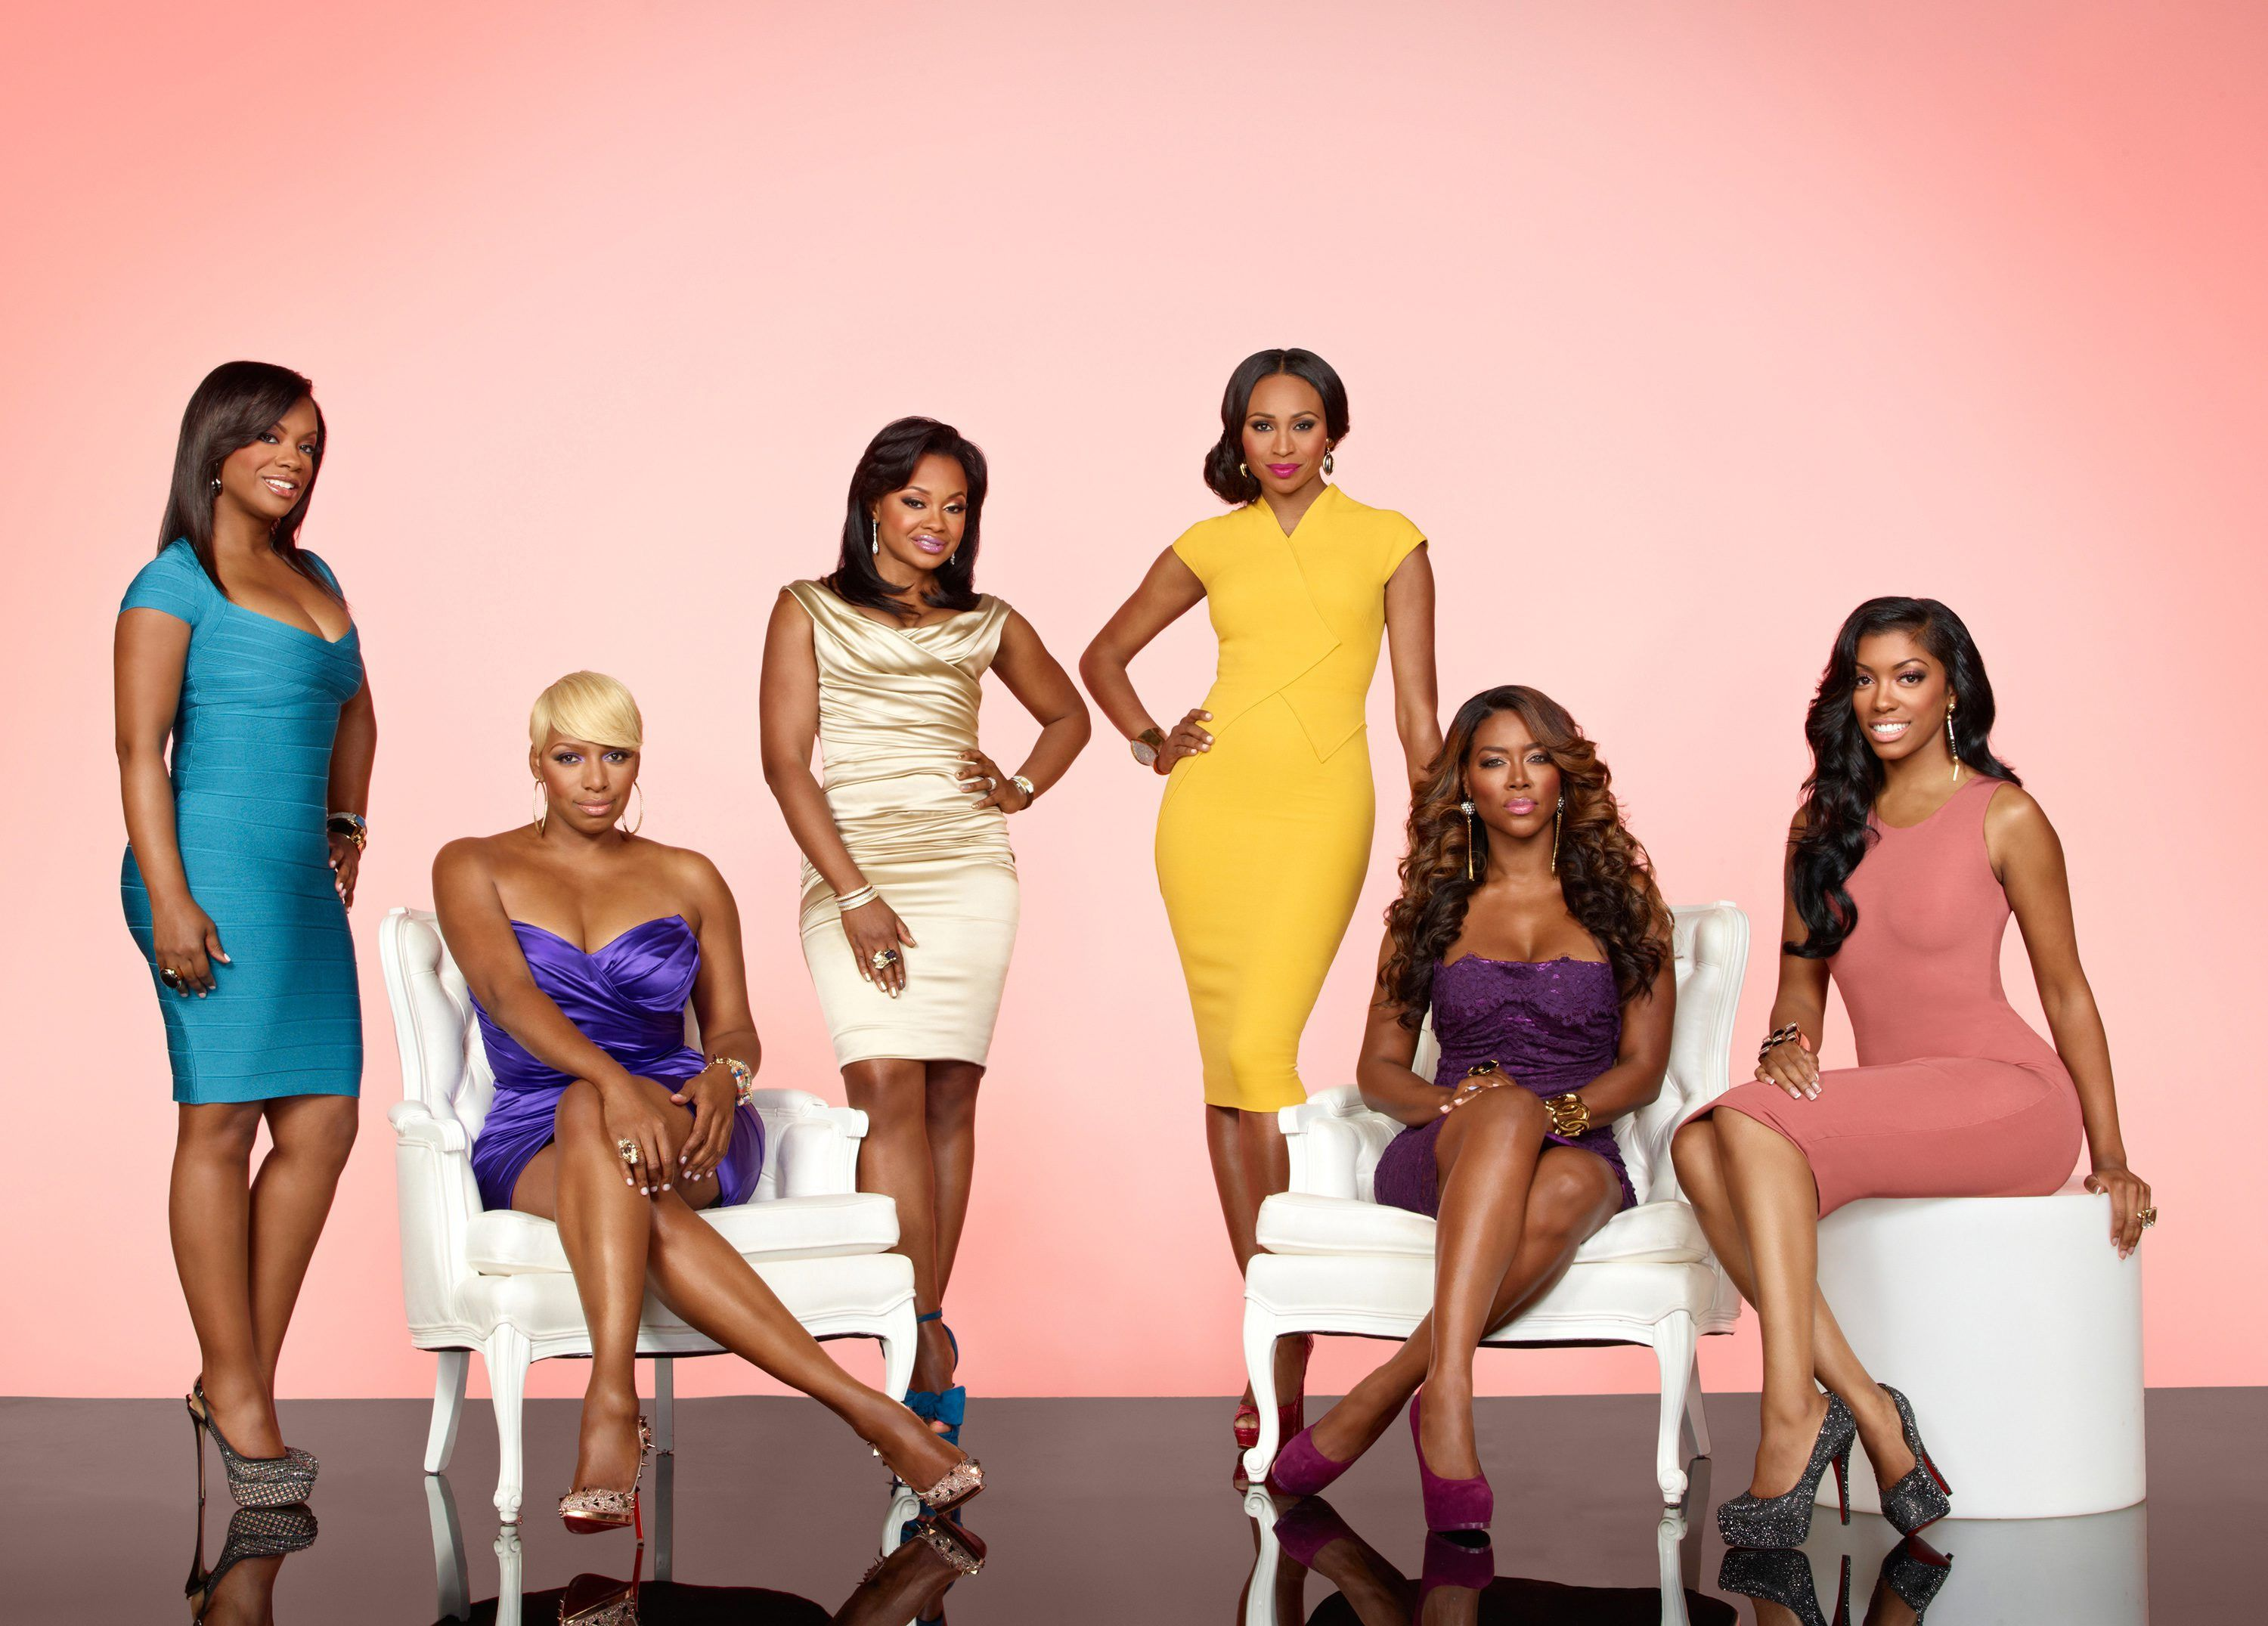 Cast Of Real Housewives of Atlanta: How Much Are They Worth? - Fame10